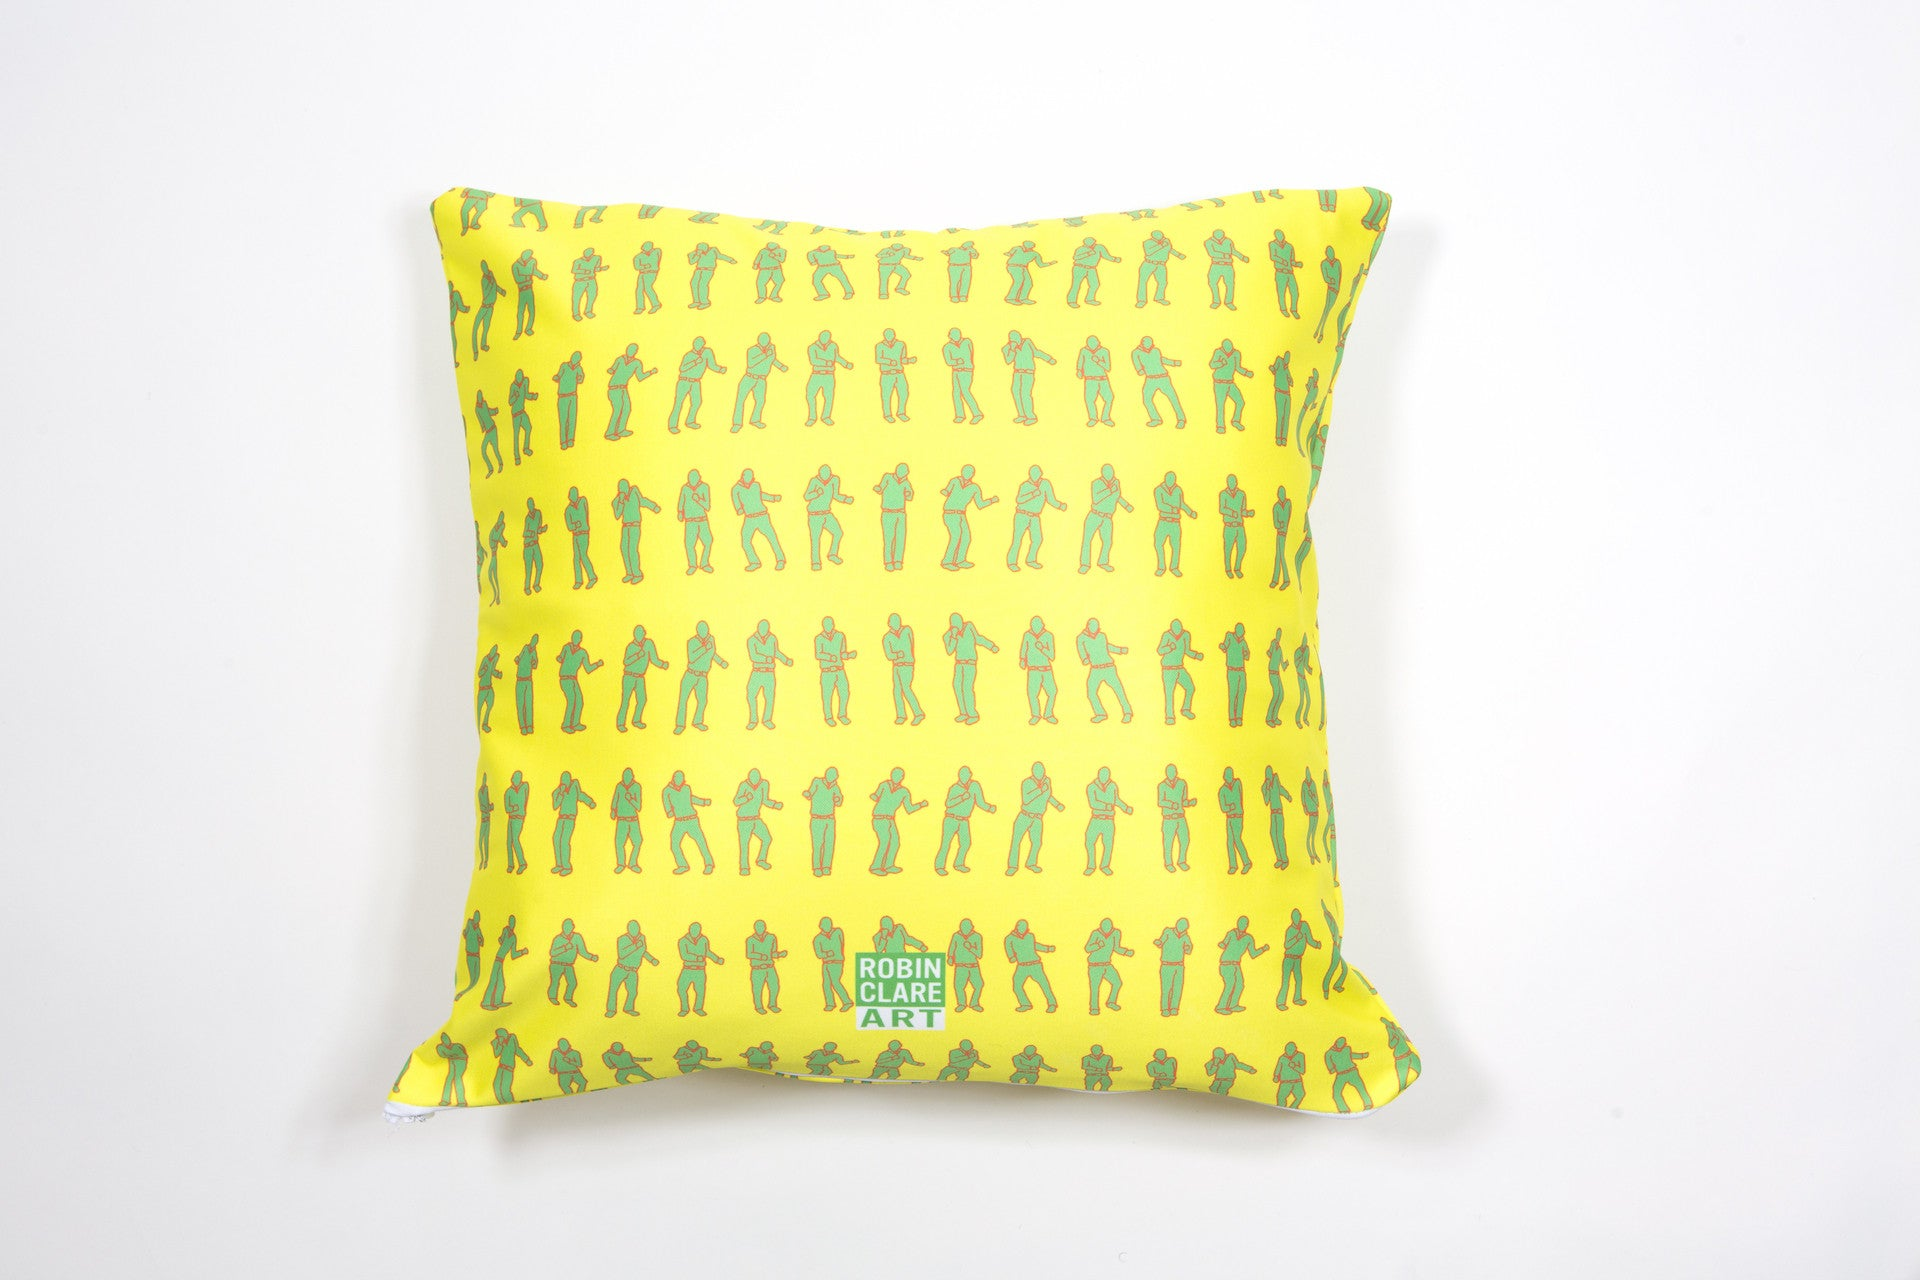 NUH LINGA DANCING CUSHION COVER